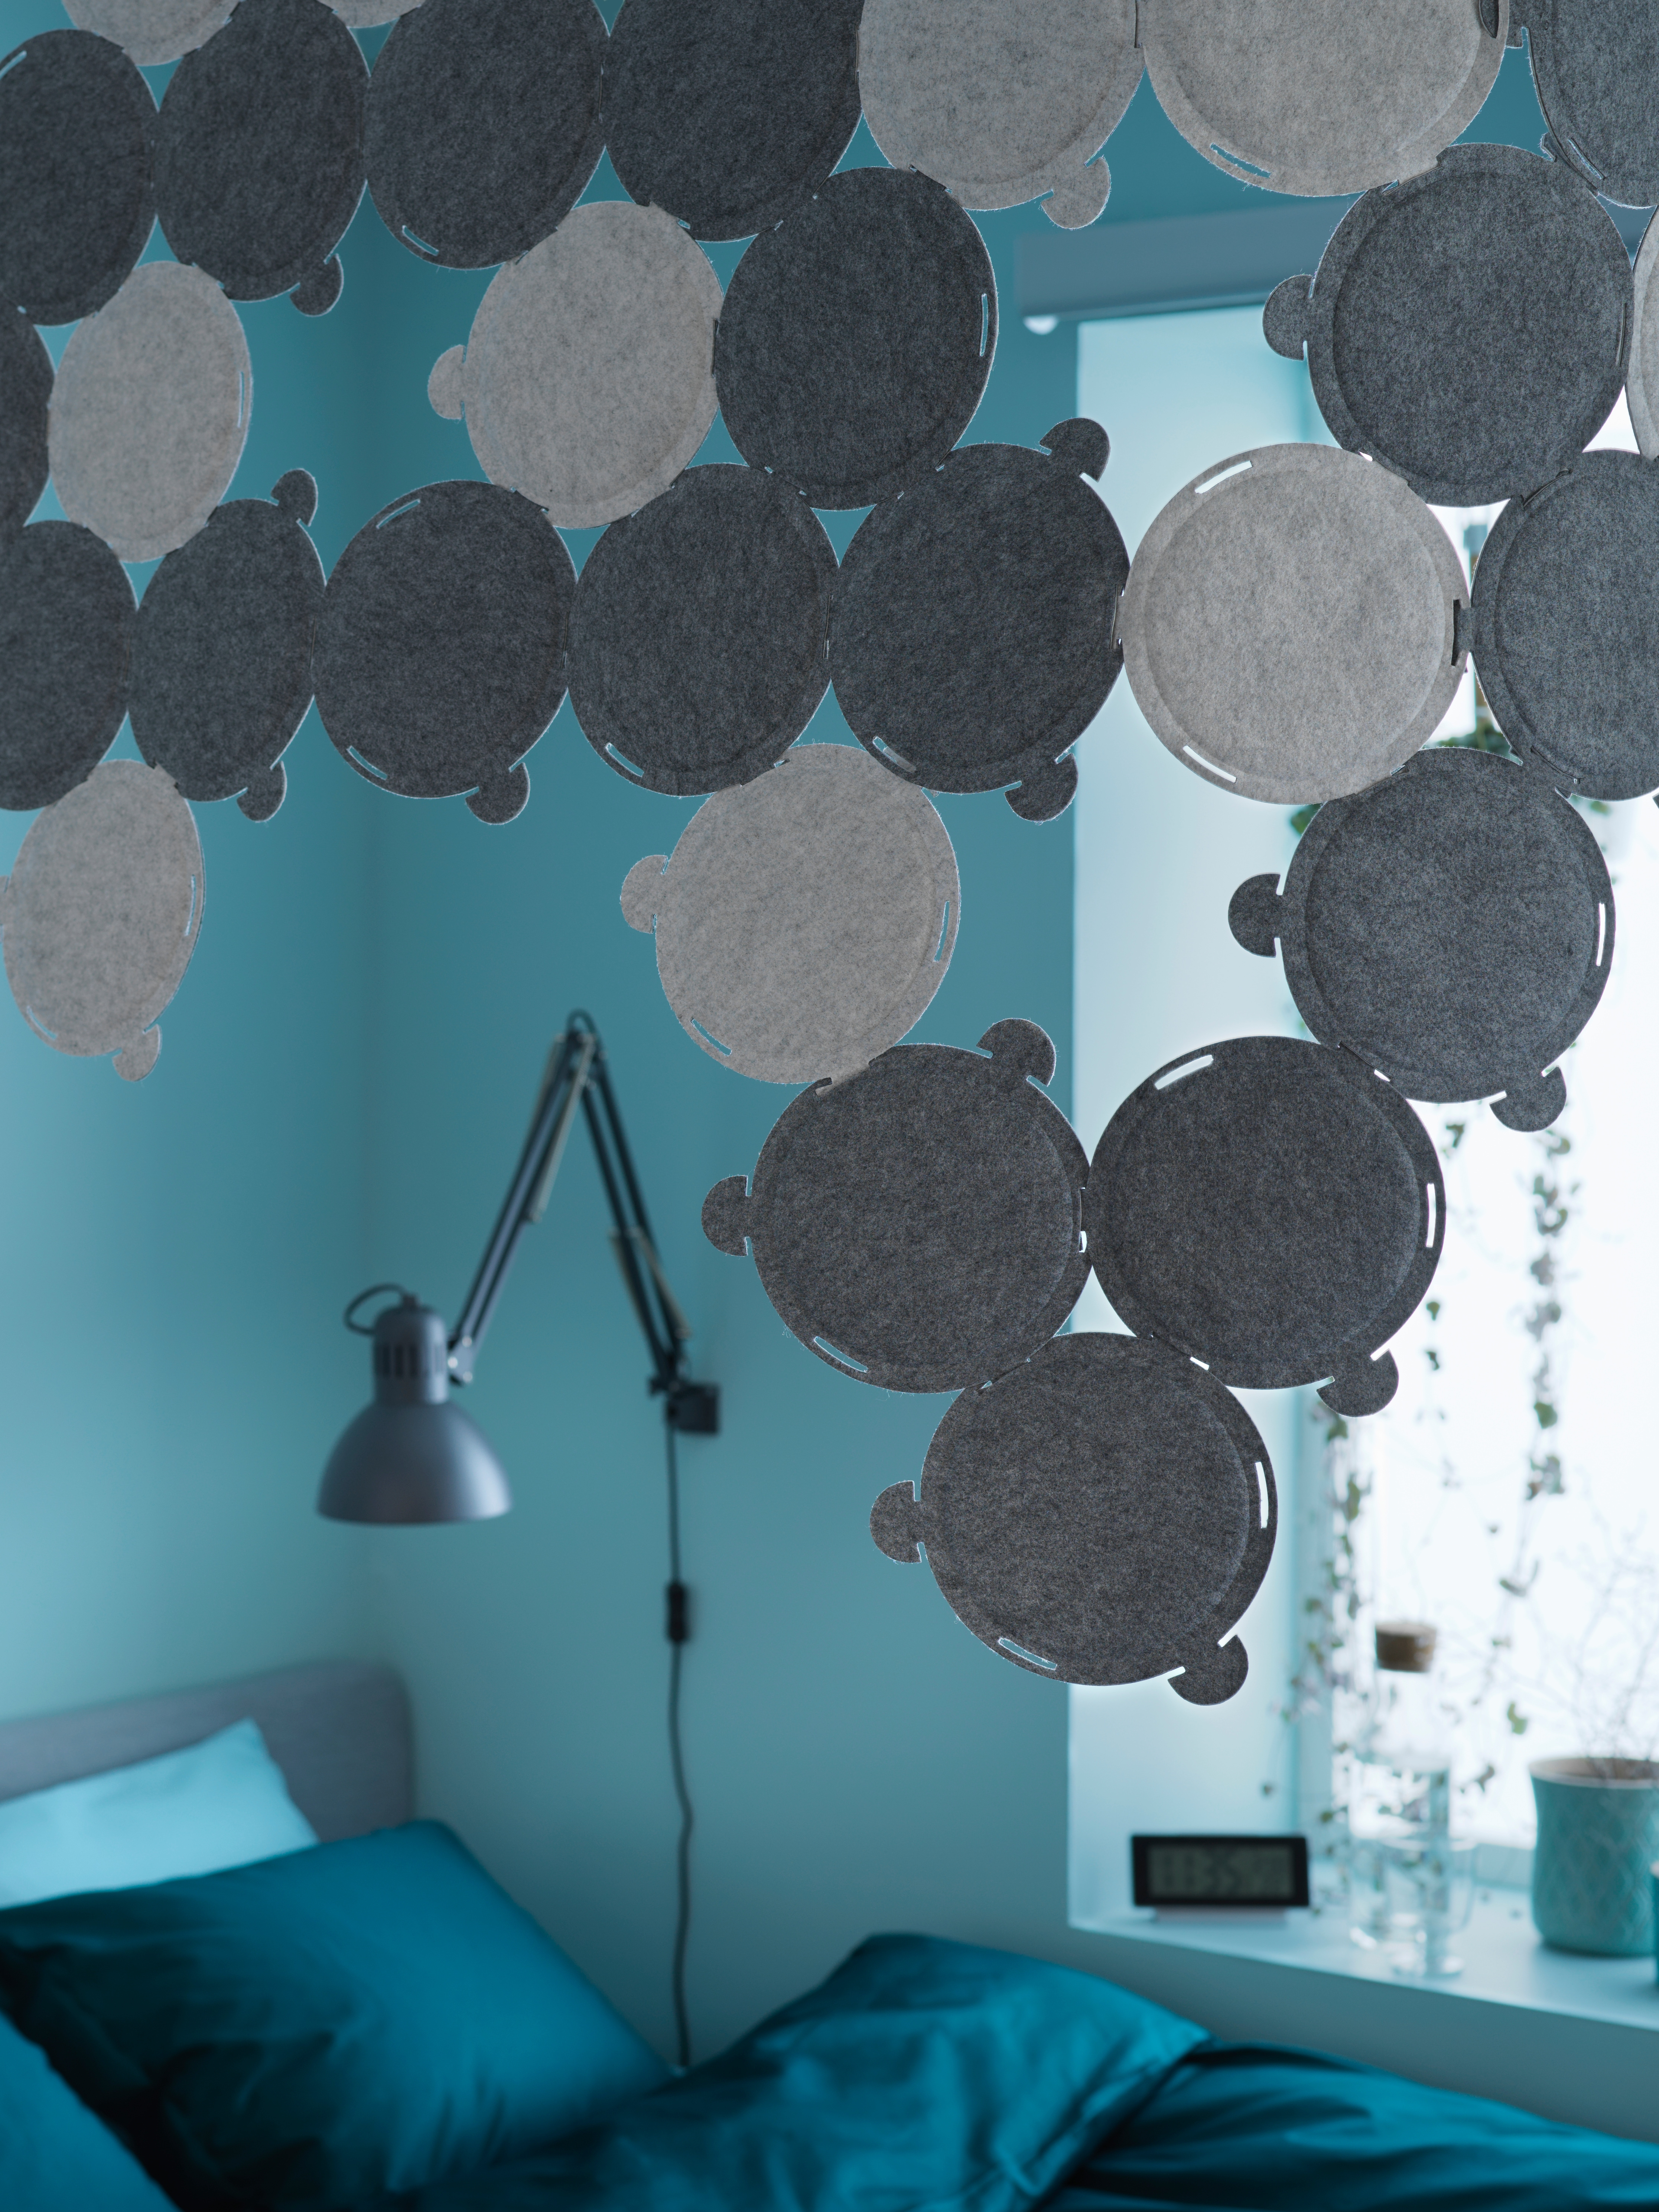 An ODDLAUG sound absorbent panel in grey, hanging in a bedroom with blueish-green walls containing a bed and reading lamp.